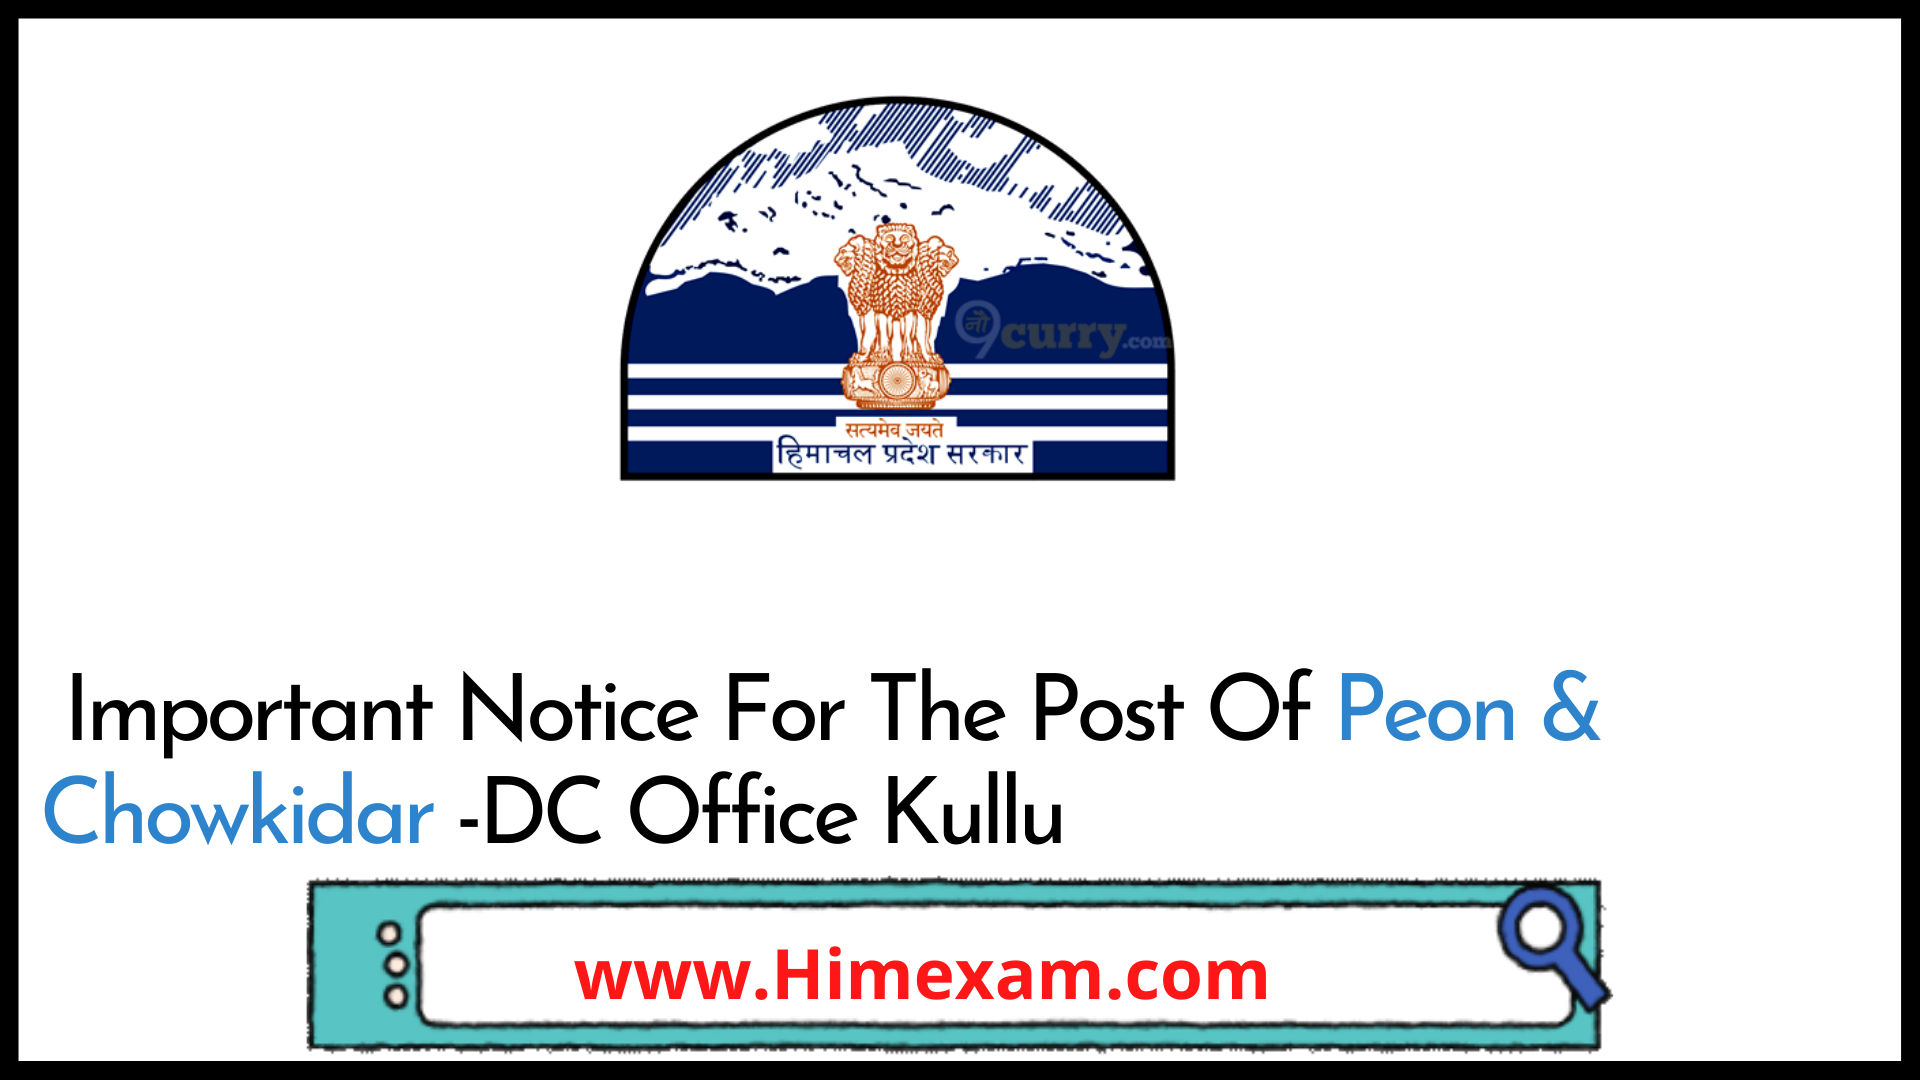 Important Notice For The Post Of Peon & Chowkidar -DC Office Kullu